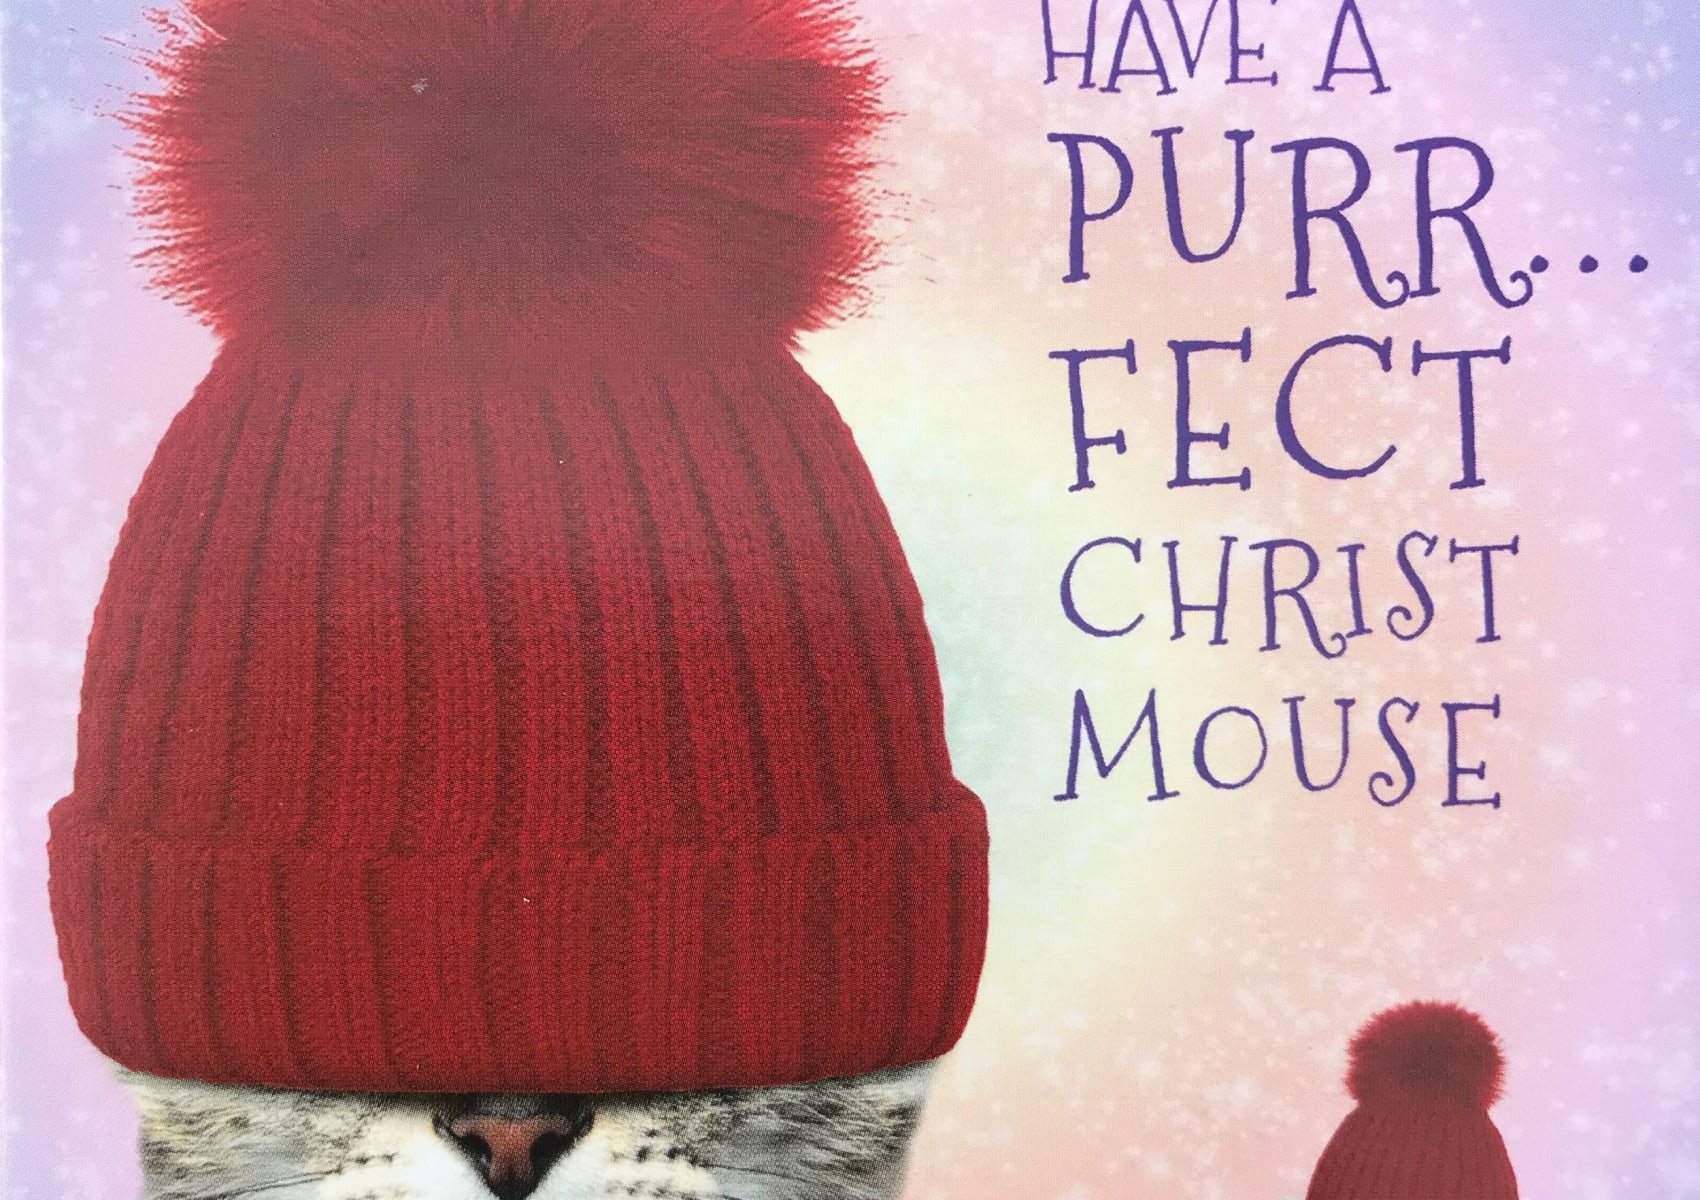 Have a Purrfect Christmouse